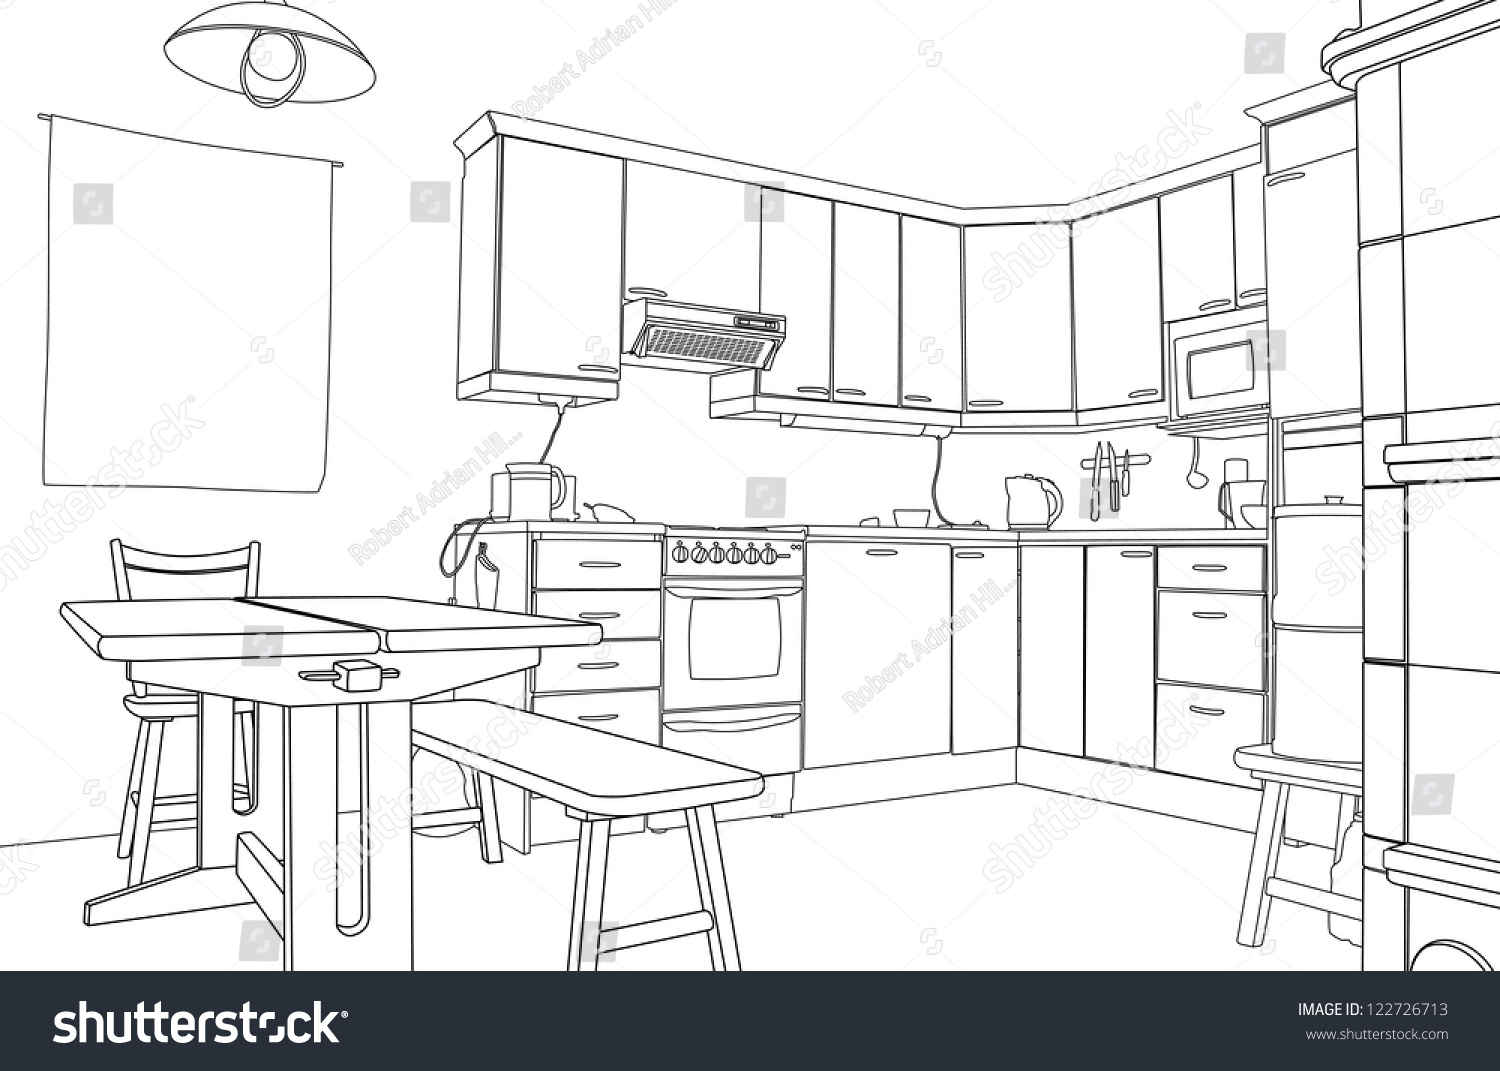 Editable Vector Illustration Outline Sketch Kitchen Stock ...